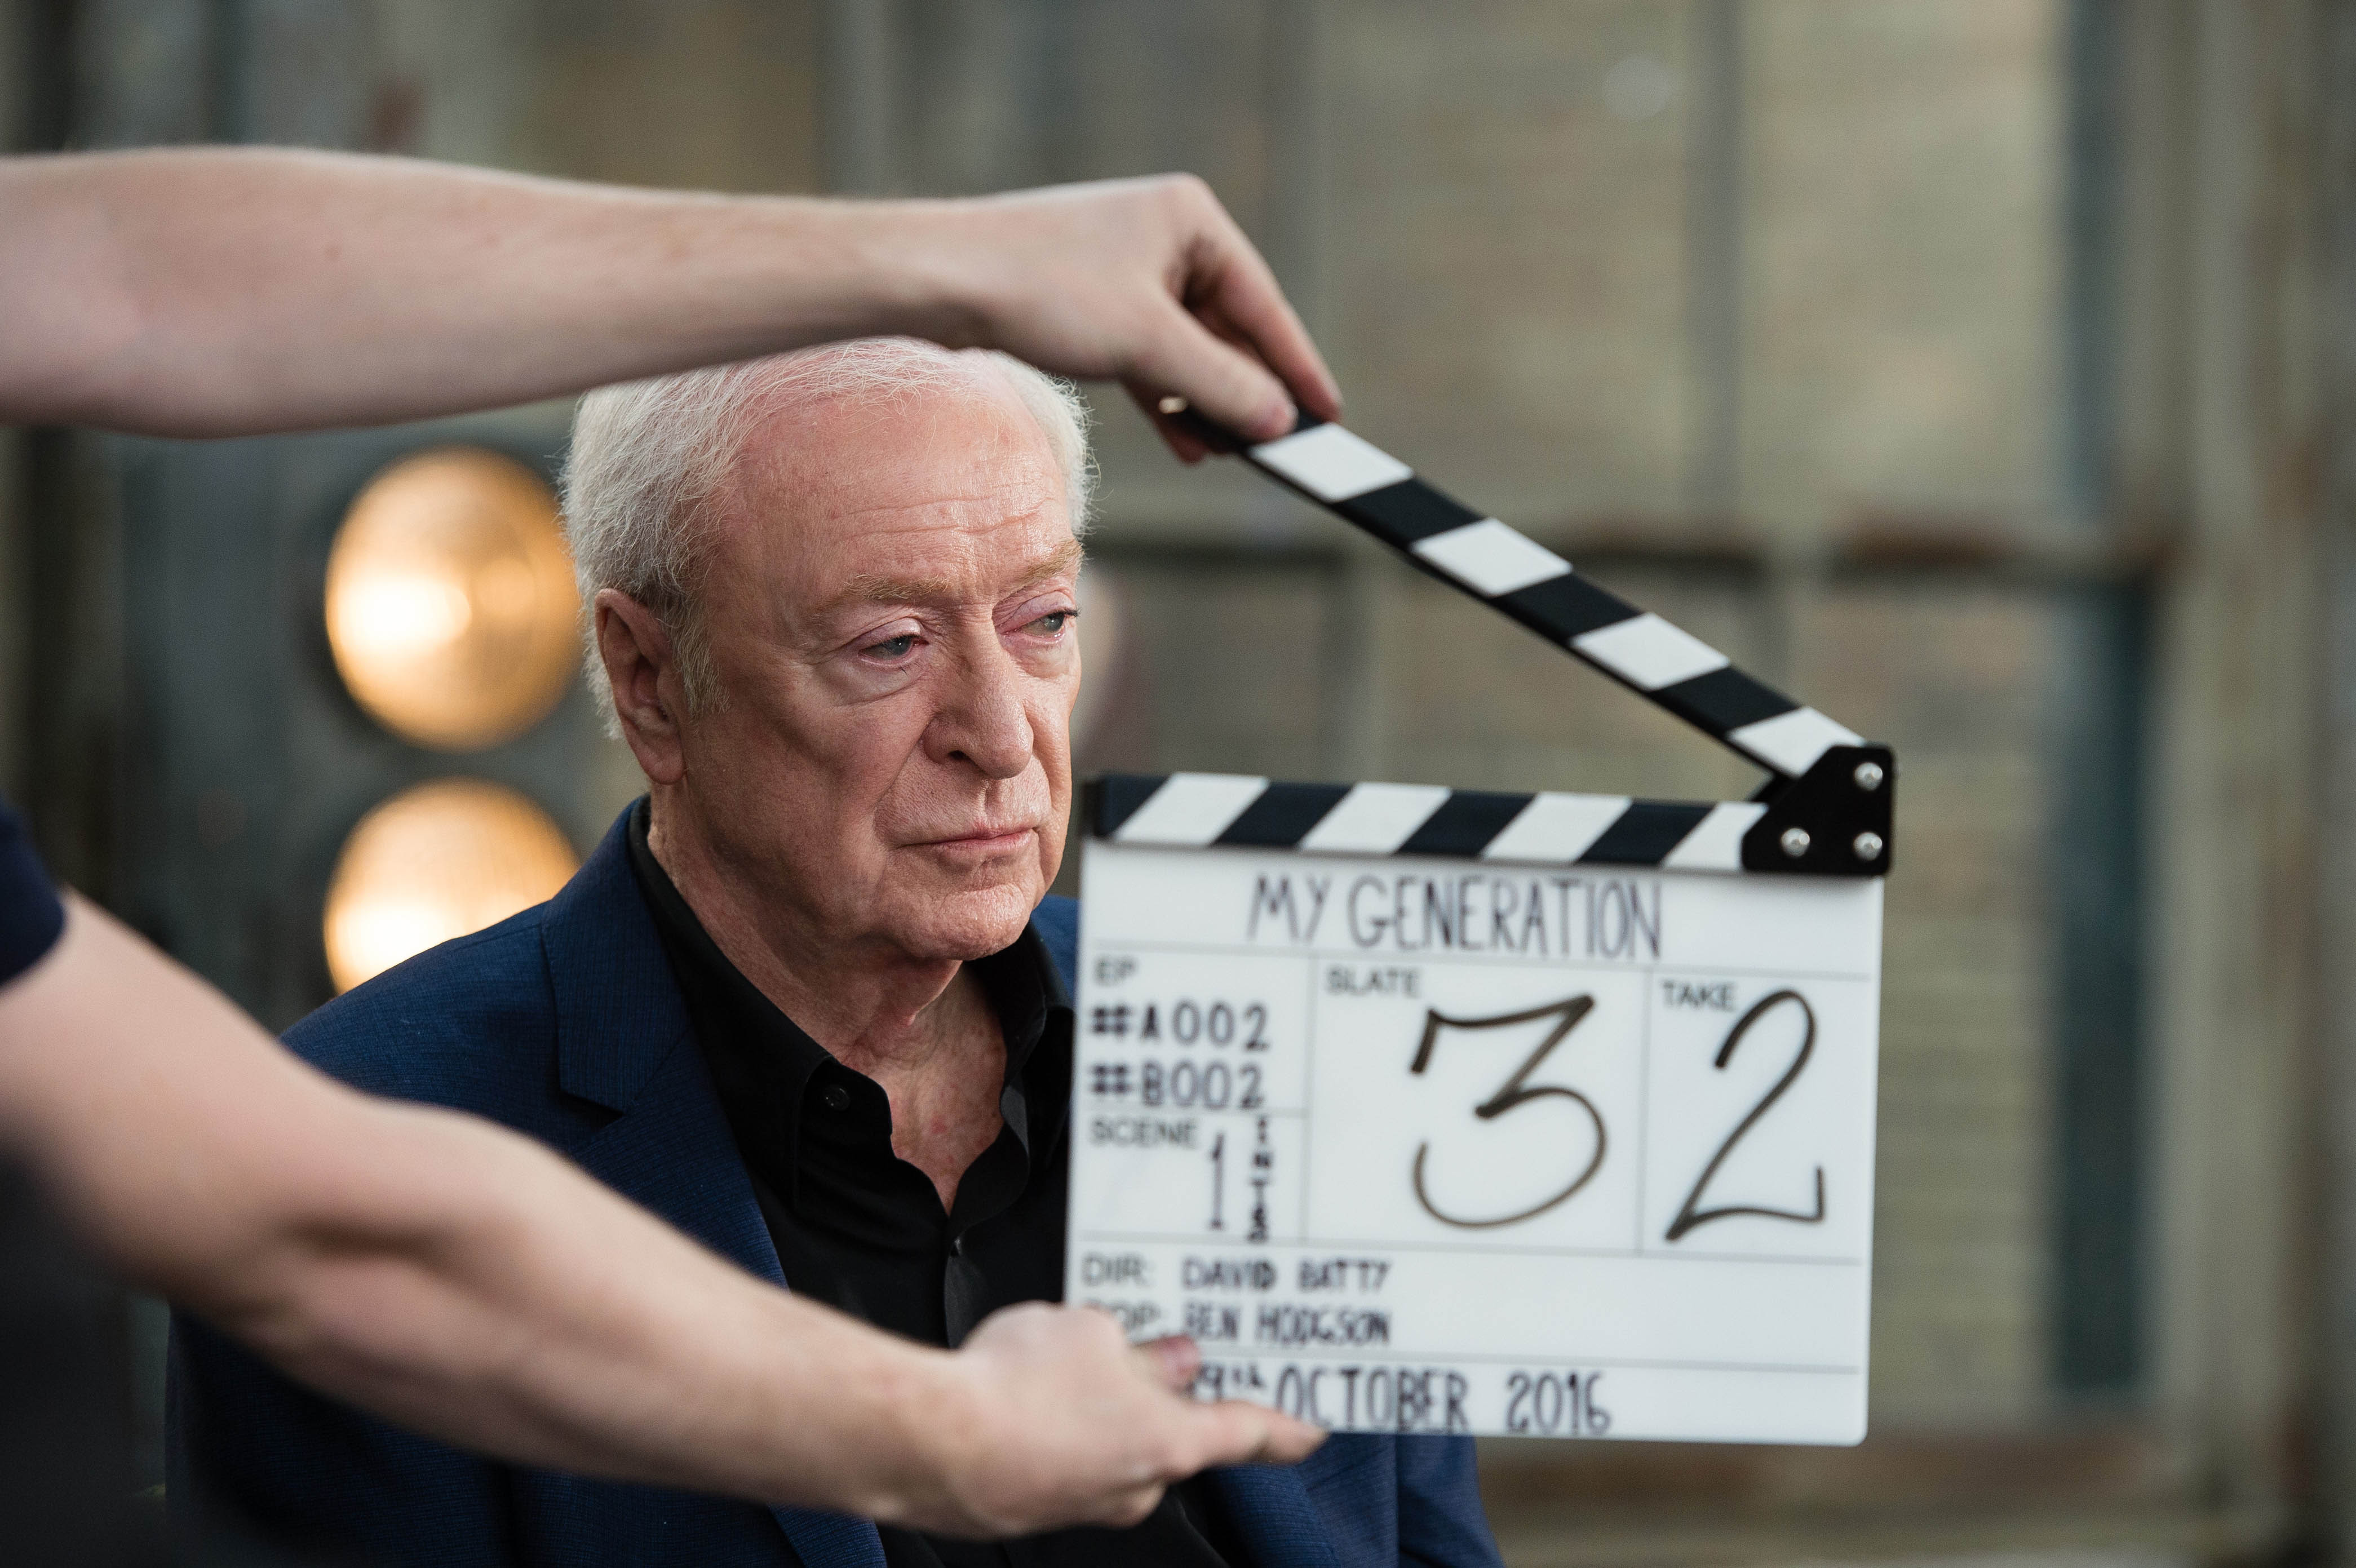 Michael Caine My Generation documentaire